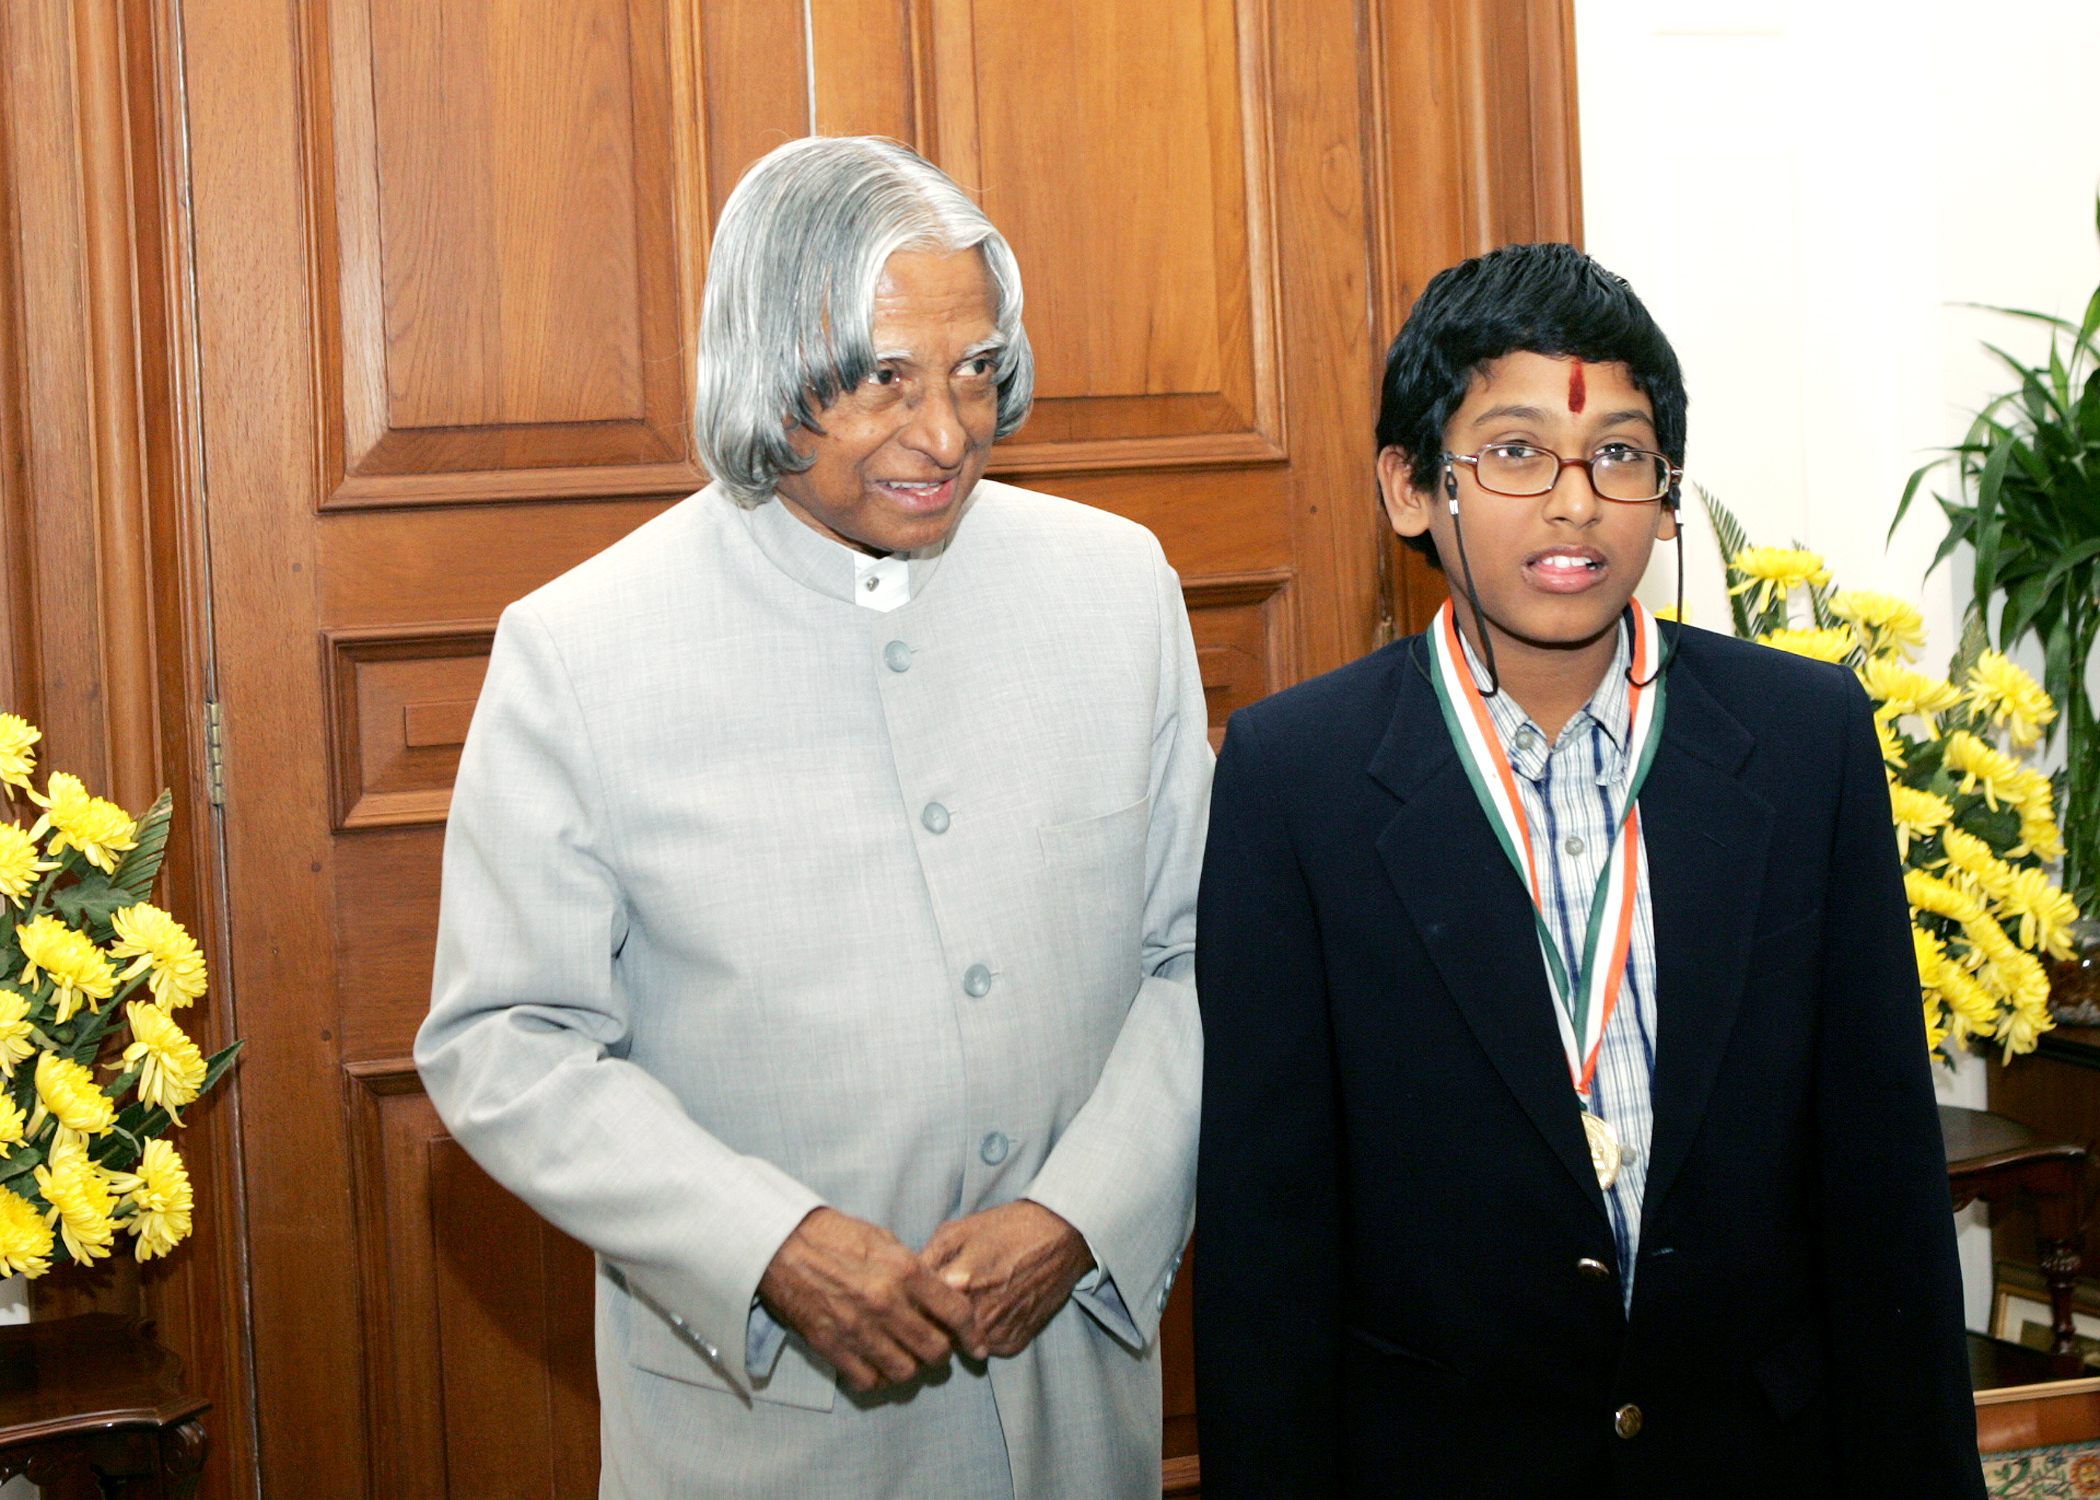 GM Priyadharshan with former President of India Mr.APJ.Abdul Kalam in Rashtrapathi Bhavan